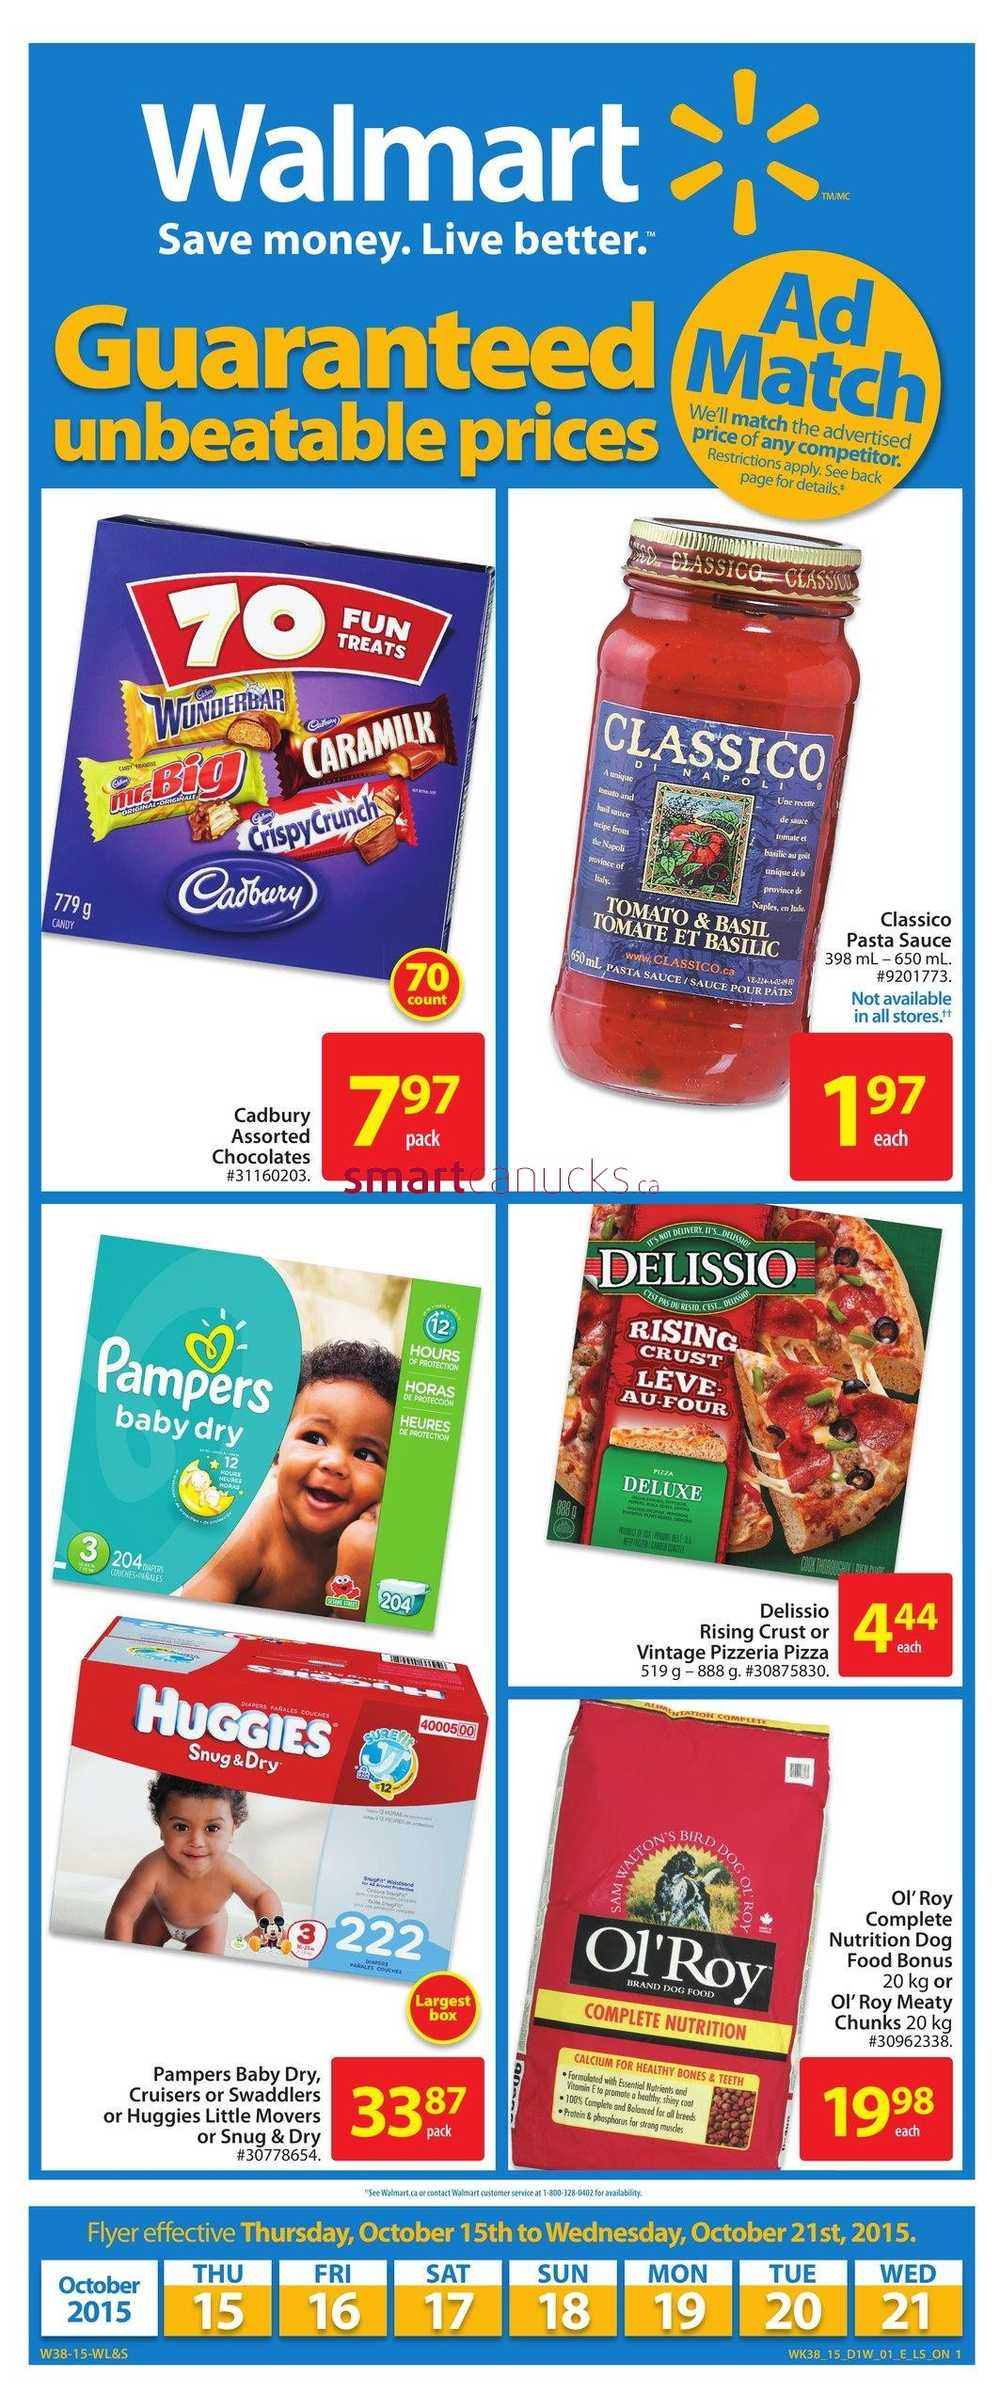 Walmart coupons at blogdumbwebcs.tk for December Find the latest blogdumbwebcs.tk & Walmart coupon codes, online promotional codes and the best coupons for Walmart. Our writers continually update our pages with the most recent promo codes & coupons for Walmart.